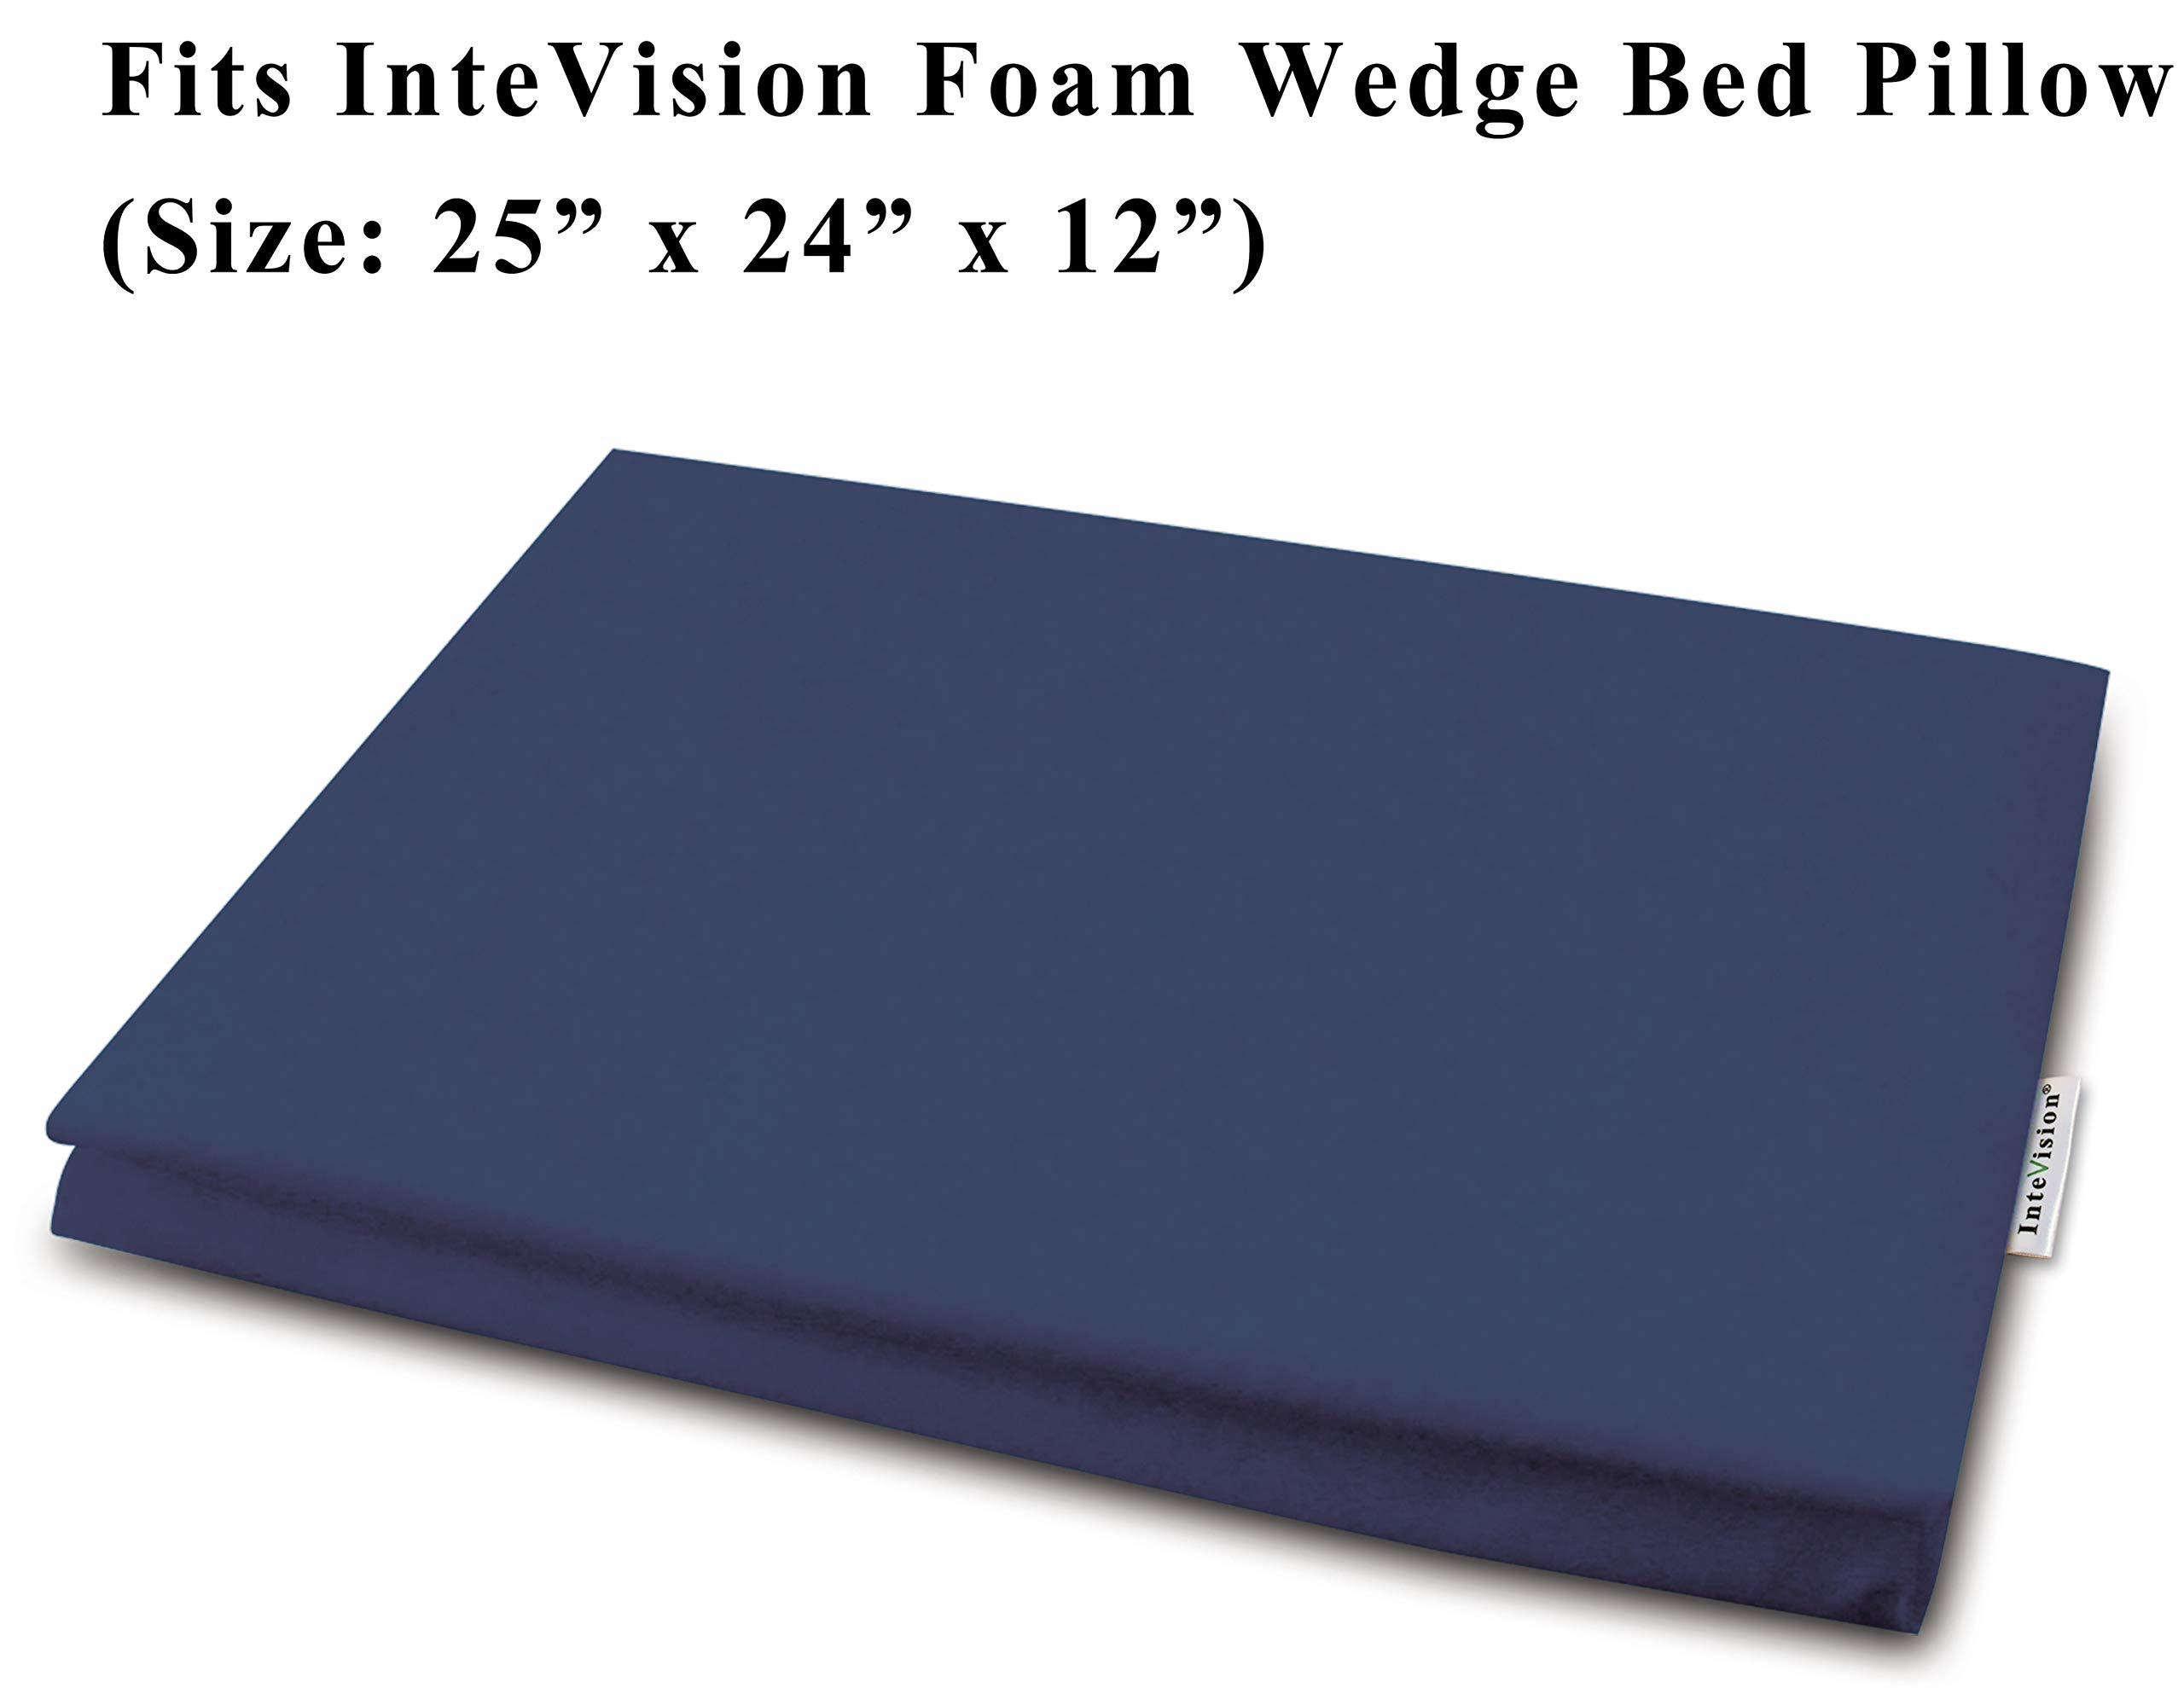 InteVision 400 Thread Count, 100% Egyptian Cotton Bed Wedge Pillowcase; Replacement Cover Designed to Fit the 12'' (Height) Version of the InteVision Foam Wedge Bed Pillow (25'' x 24'' x 12'')